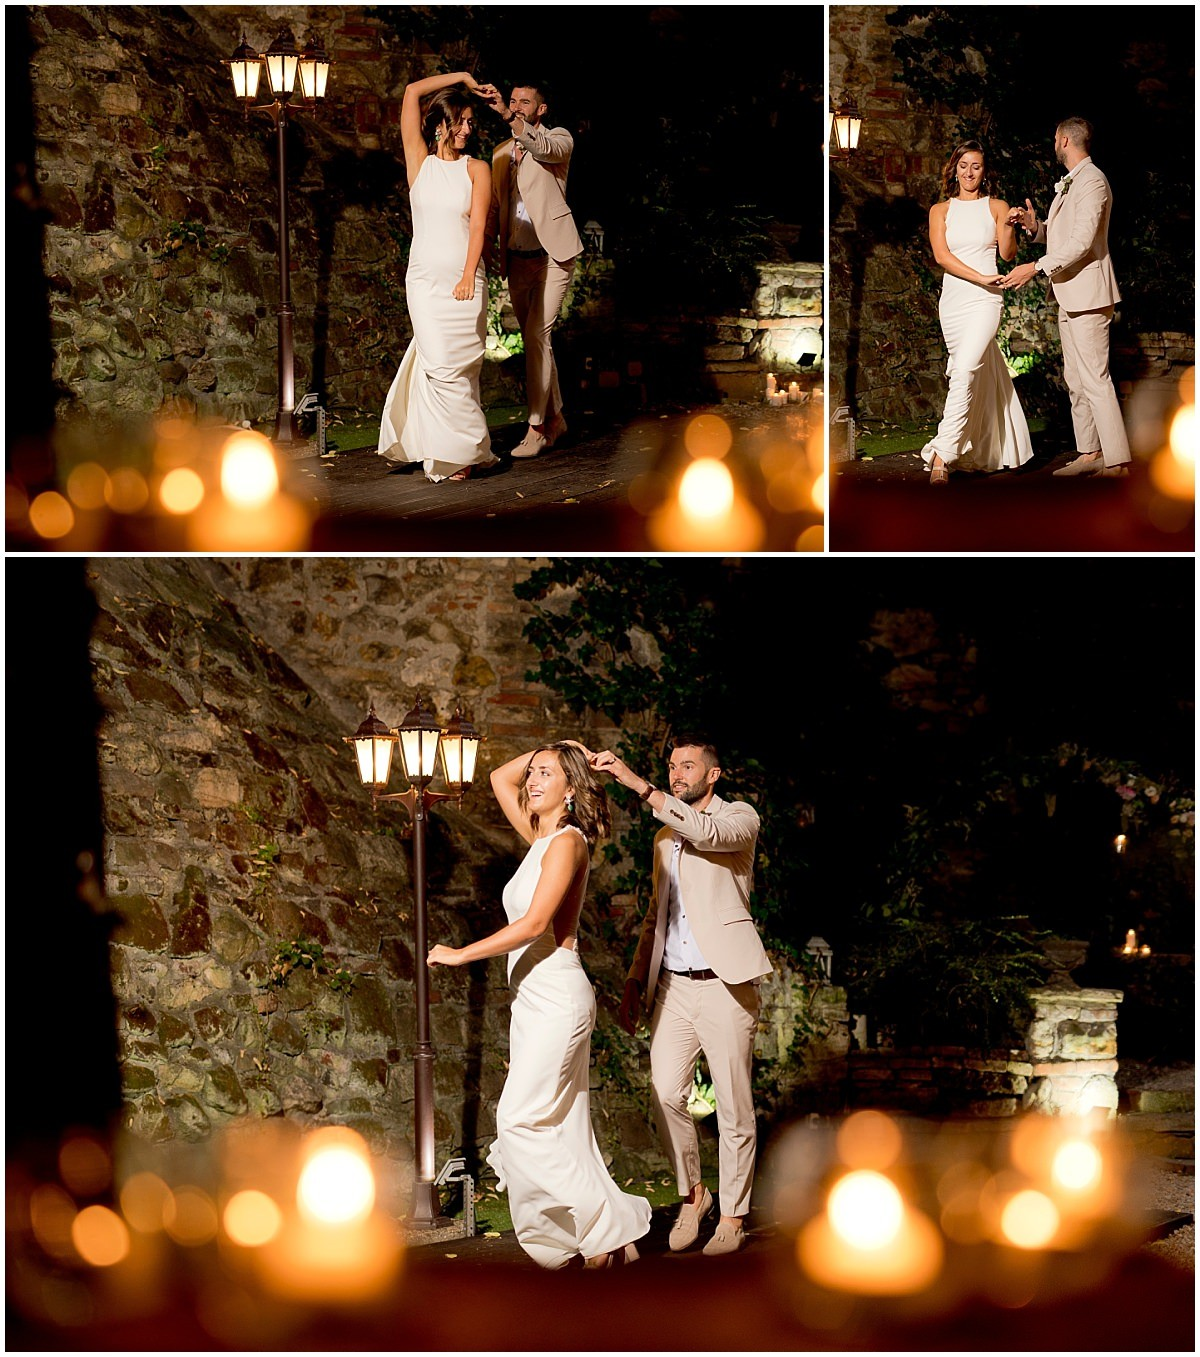 First dance at night